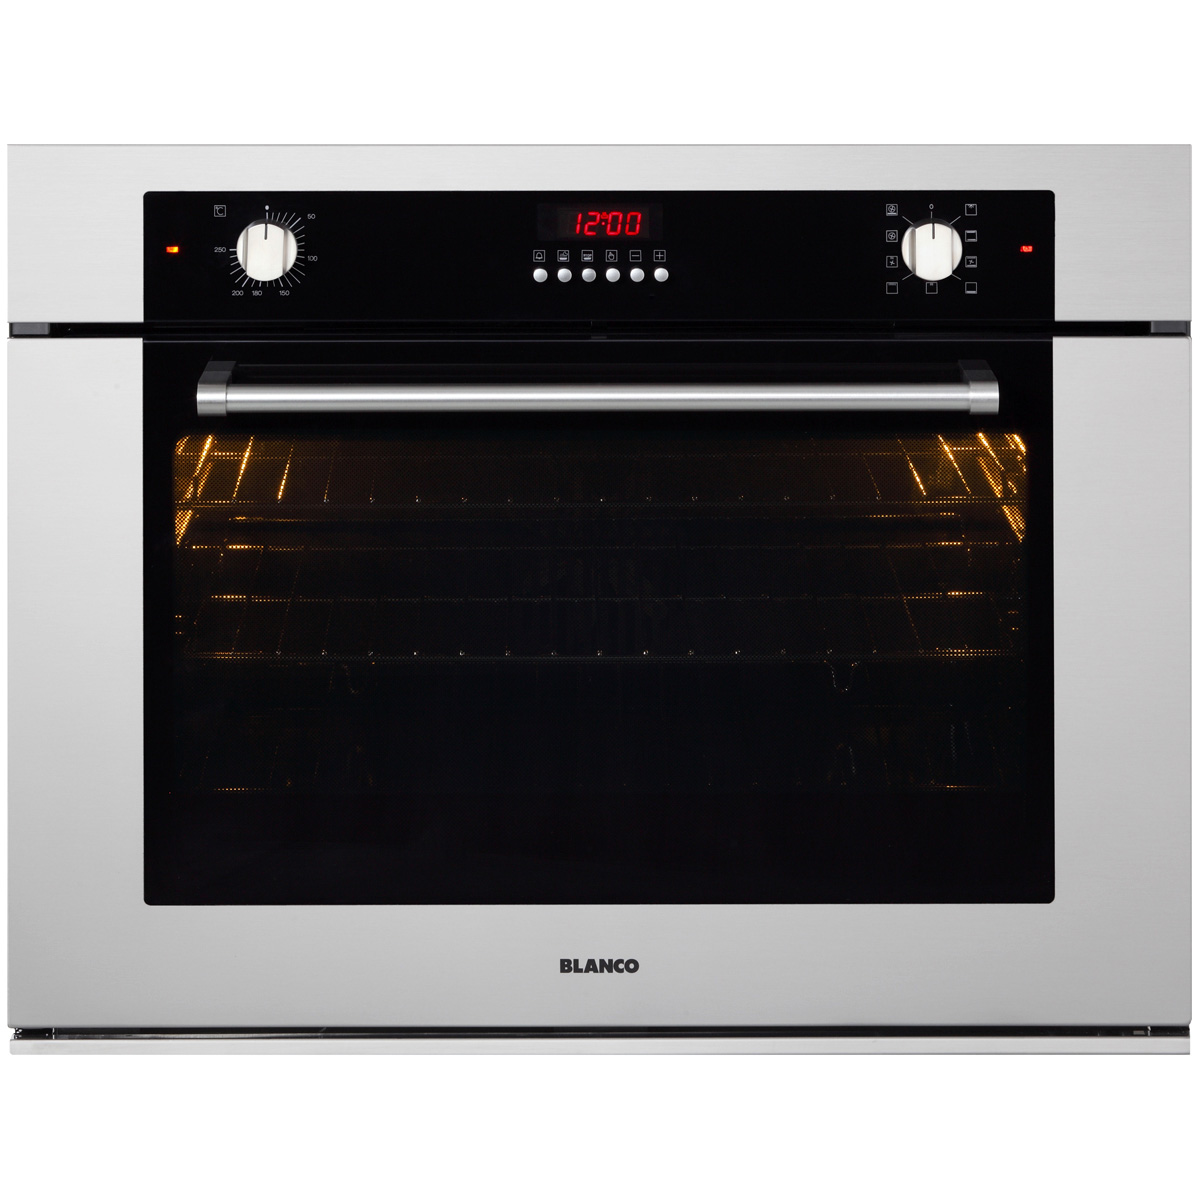 Blanco BOSE709M 75cm Electric Wall Oven